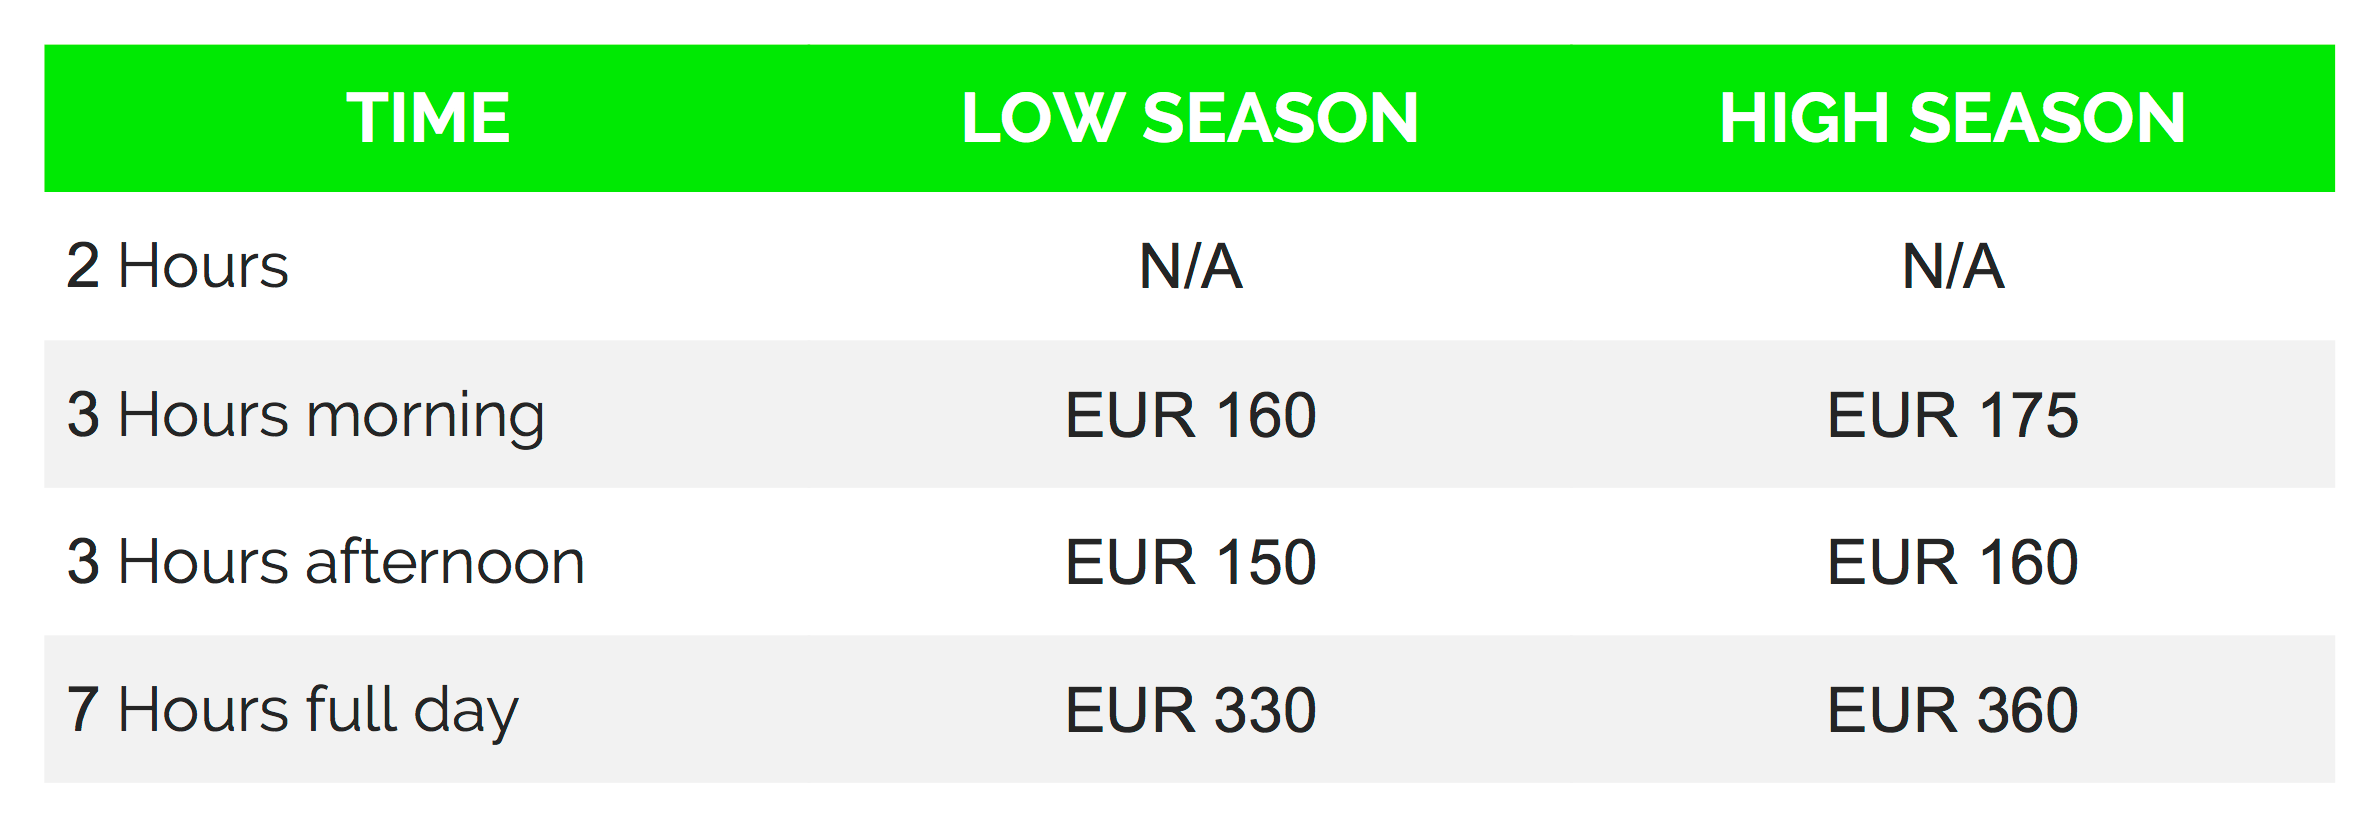 Ski Lessons Prices for France